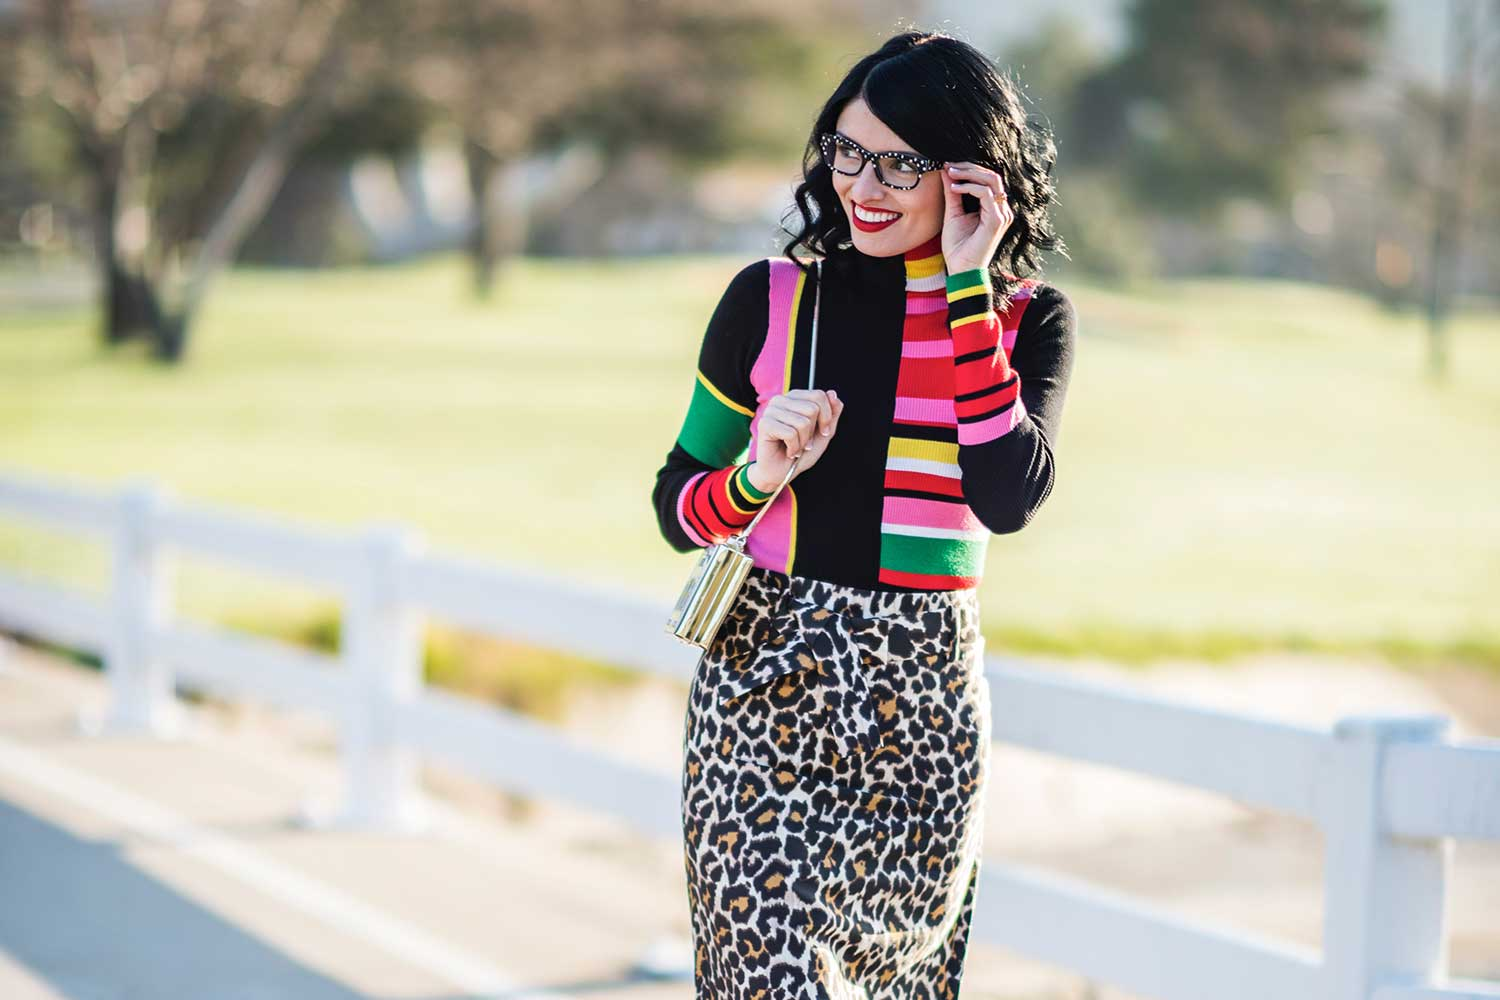 Jenna-Pilant-Style-Blogger-San-Diego-Lucky-Little-Mustardseed-How-To-Mix-Prints-In-Winter-4